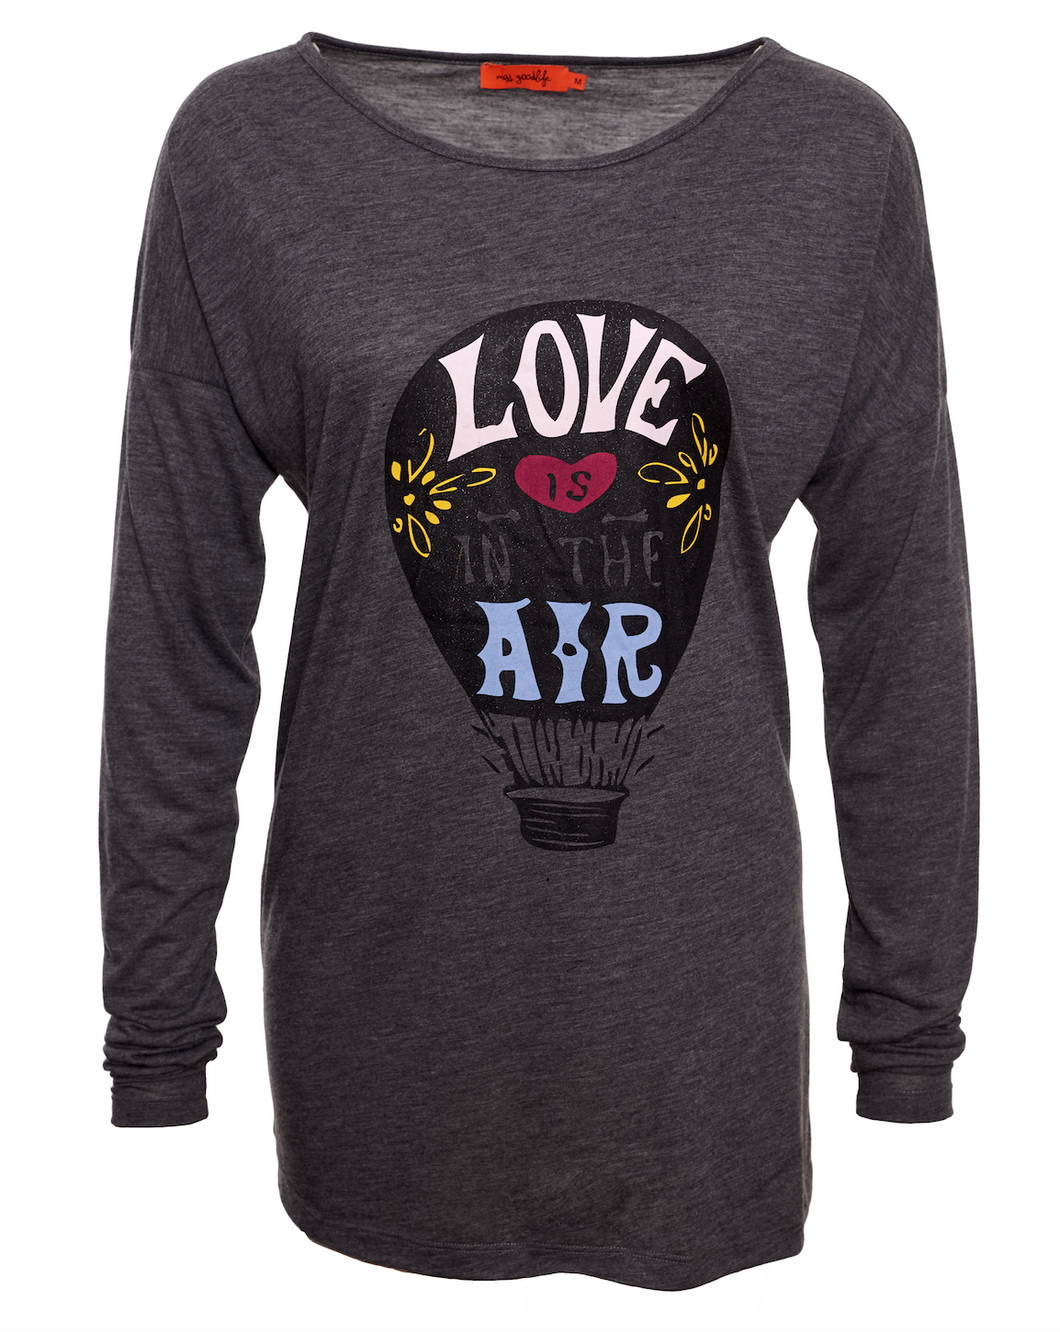 LOVE IS IN THE AIR LANGARM T-SHIRT